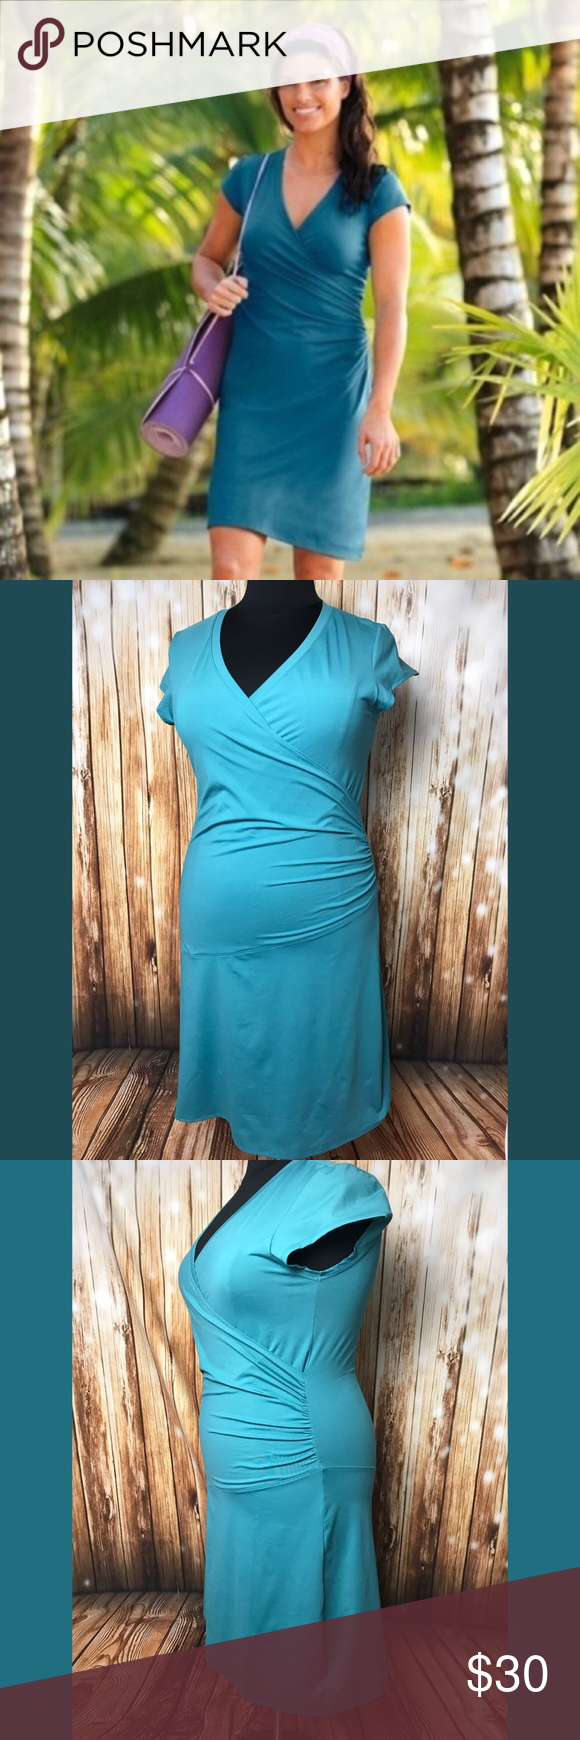 Athleta Nectar Dress Plus Teal Yoga Wrap 1X Clothes